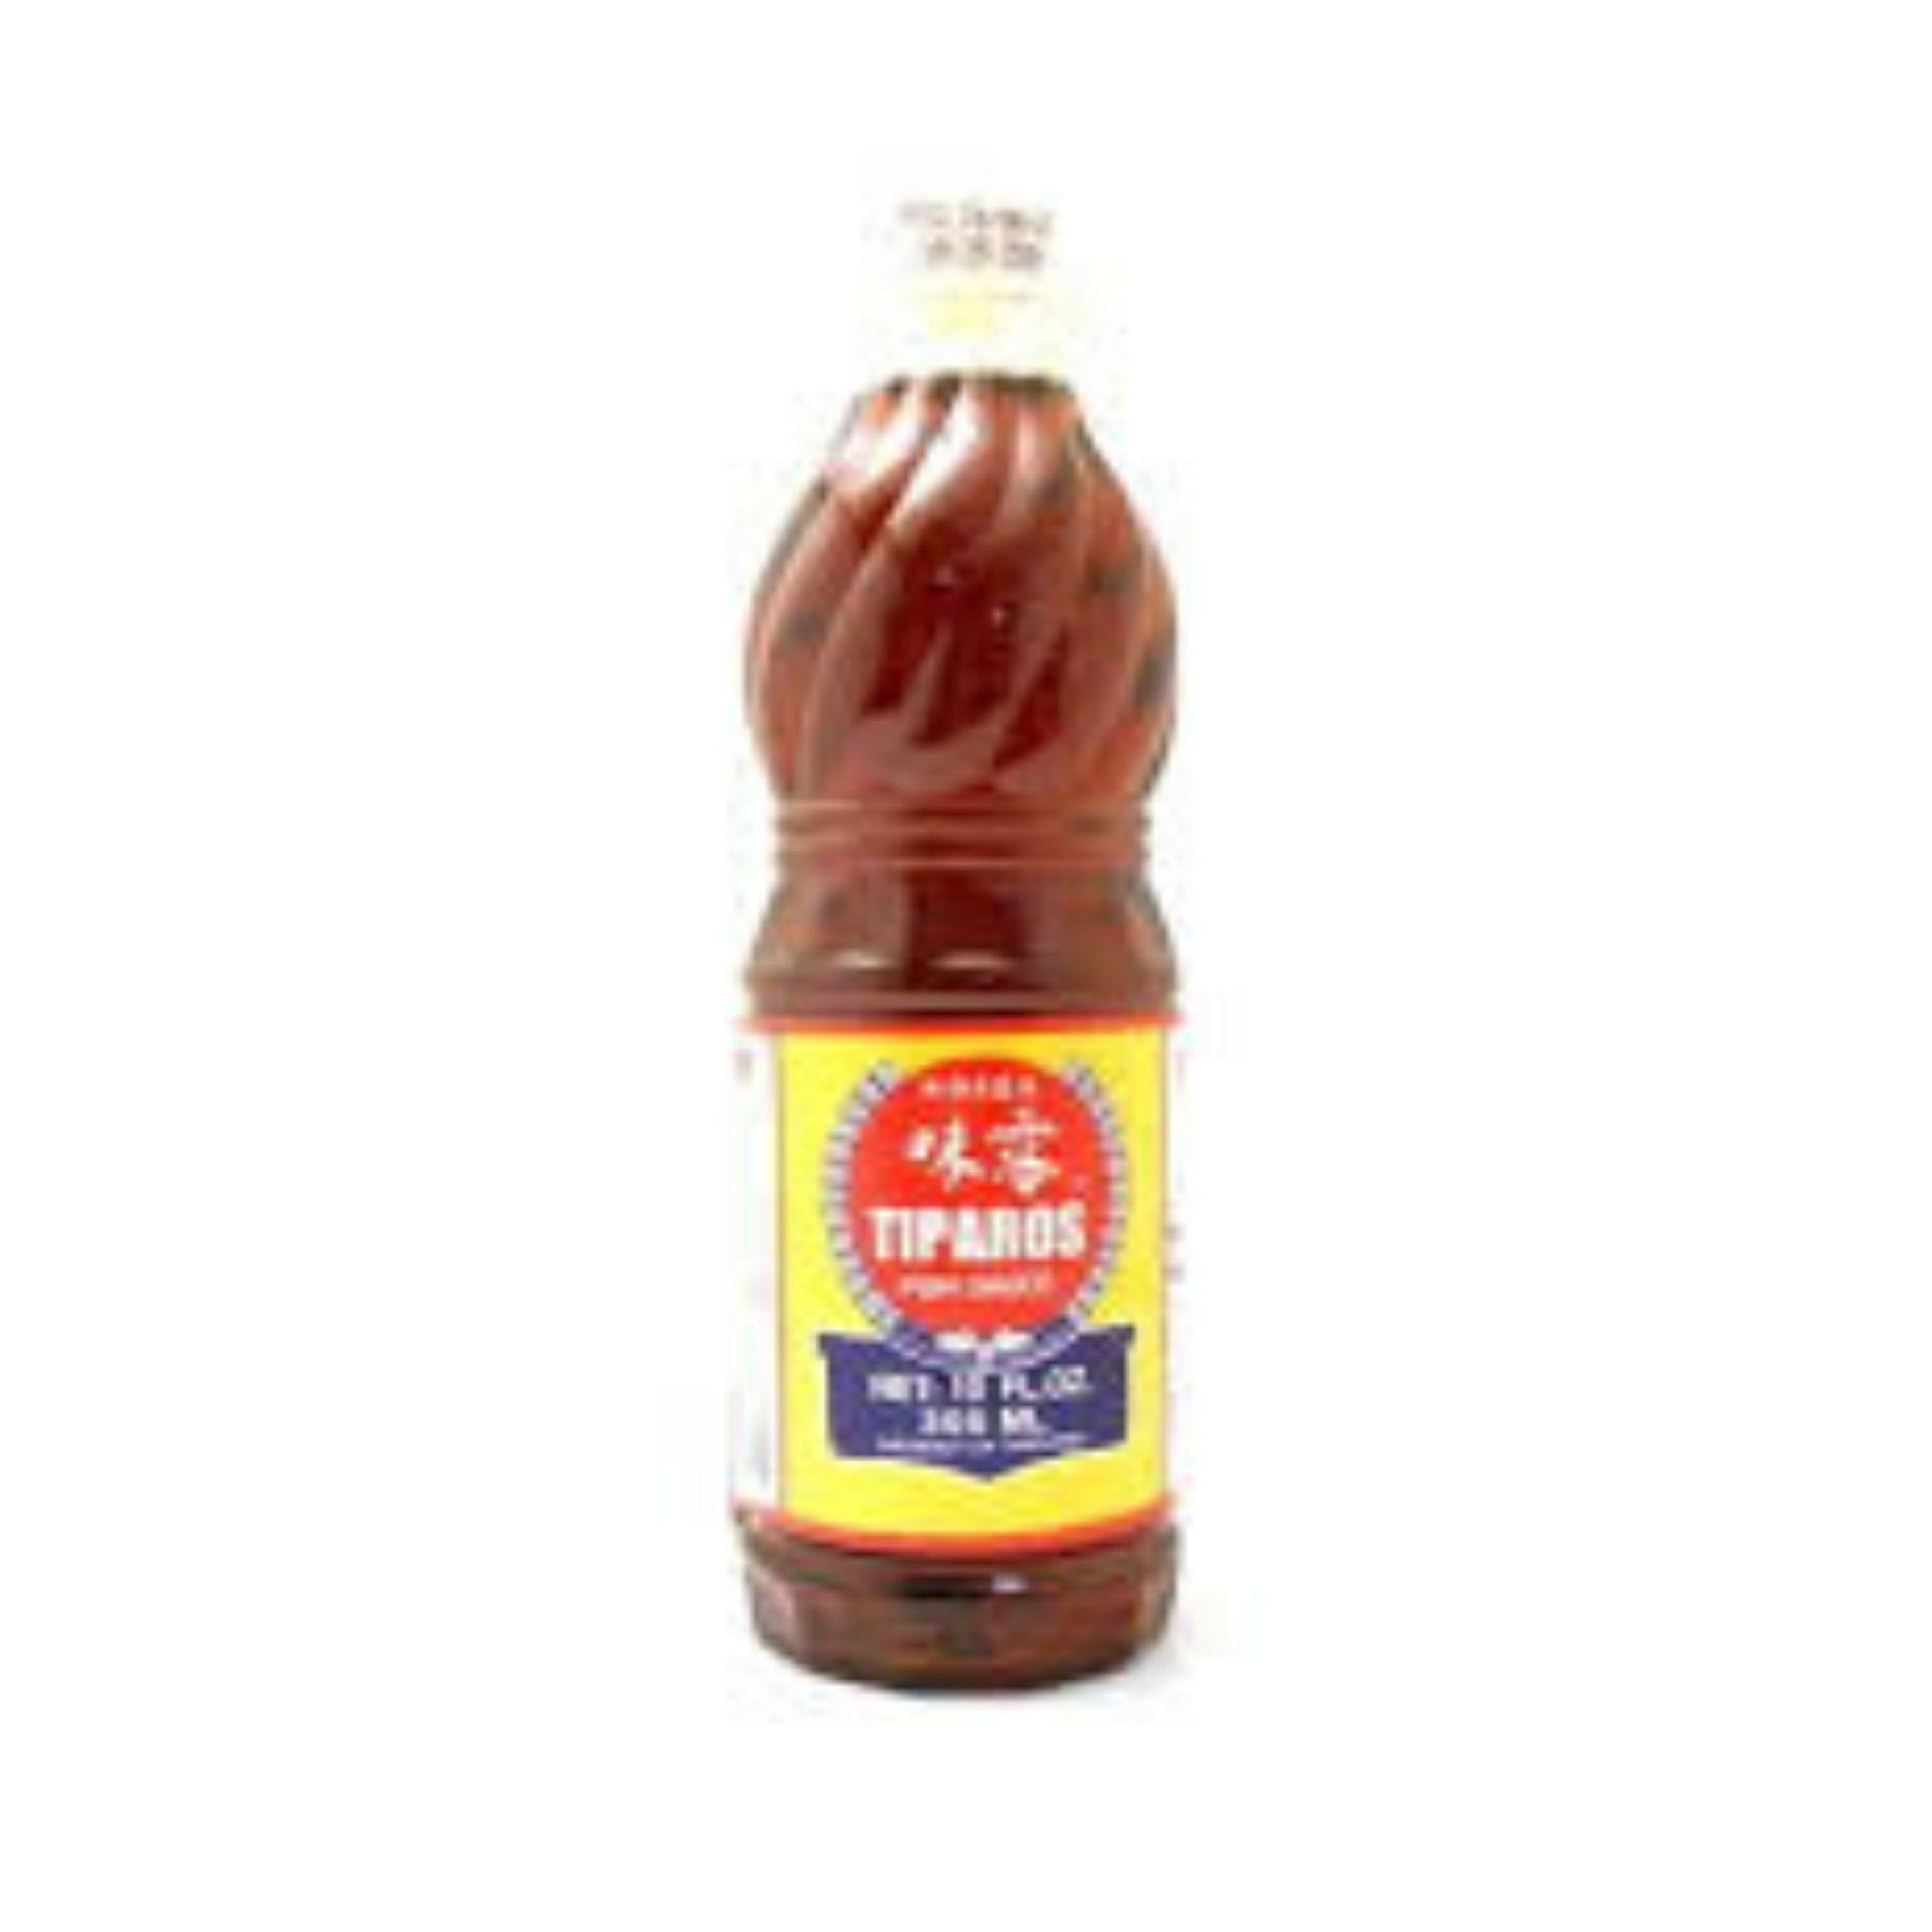 Tiparos Thai Fish Sauce 300ml - Asian Harvest